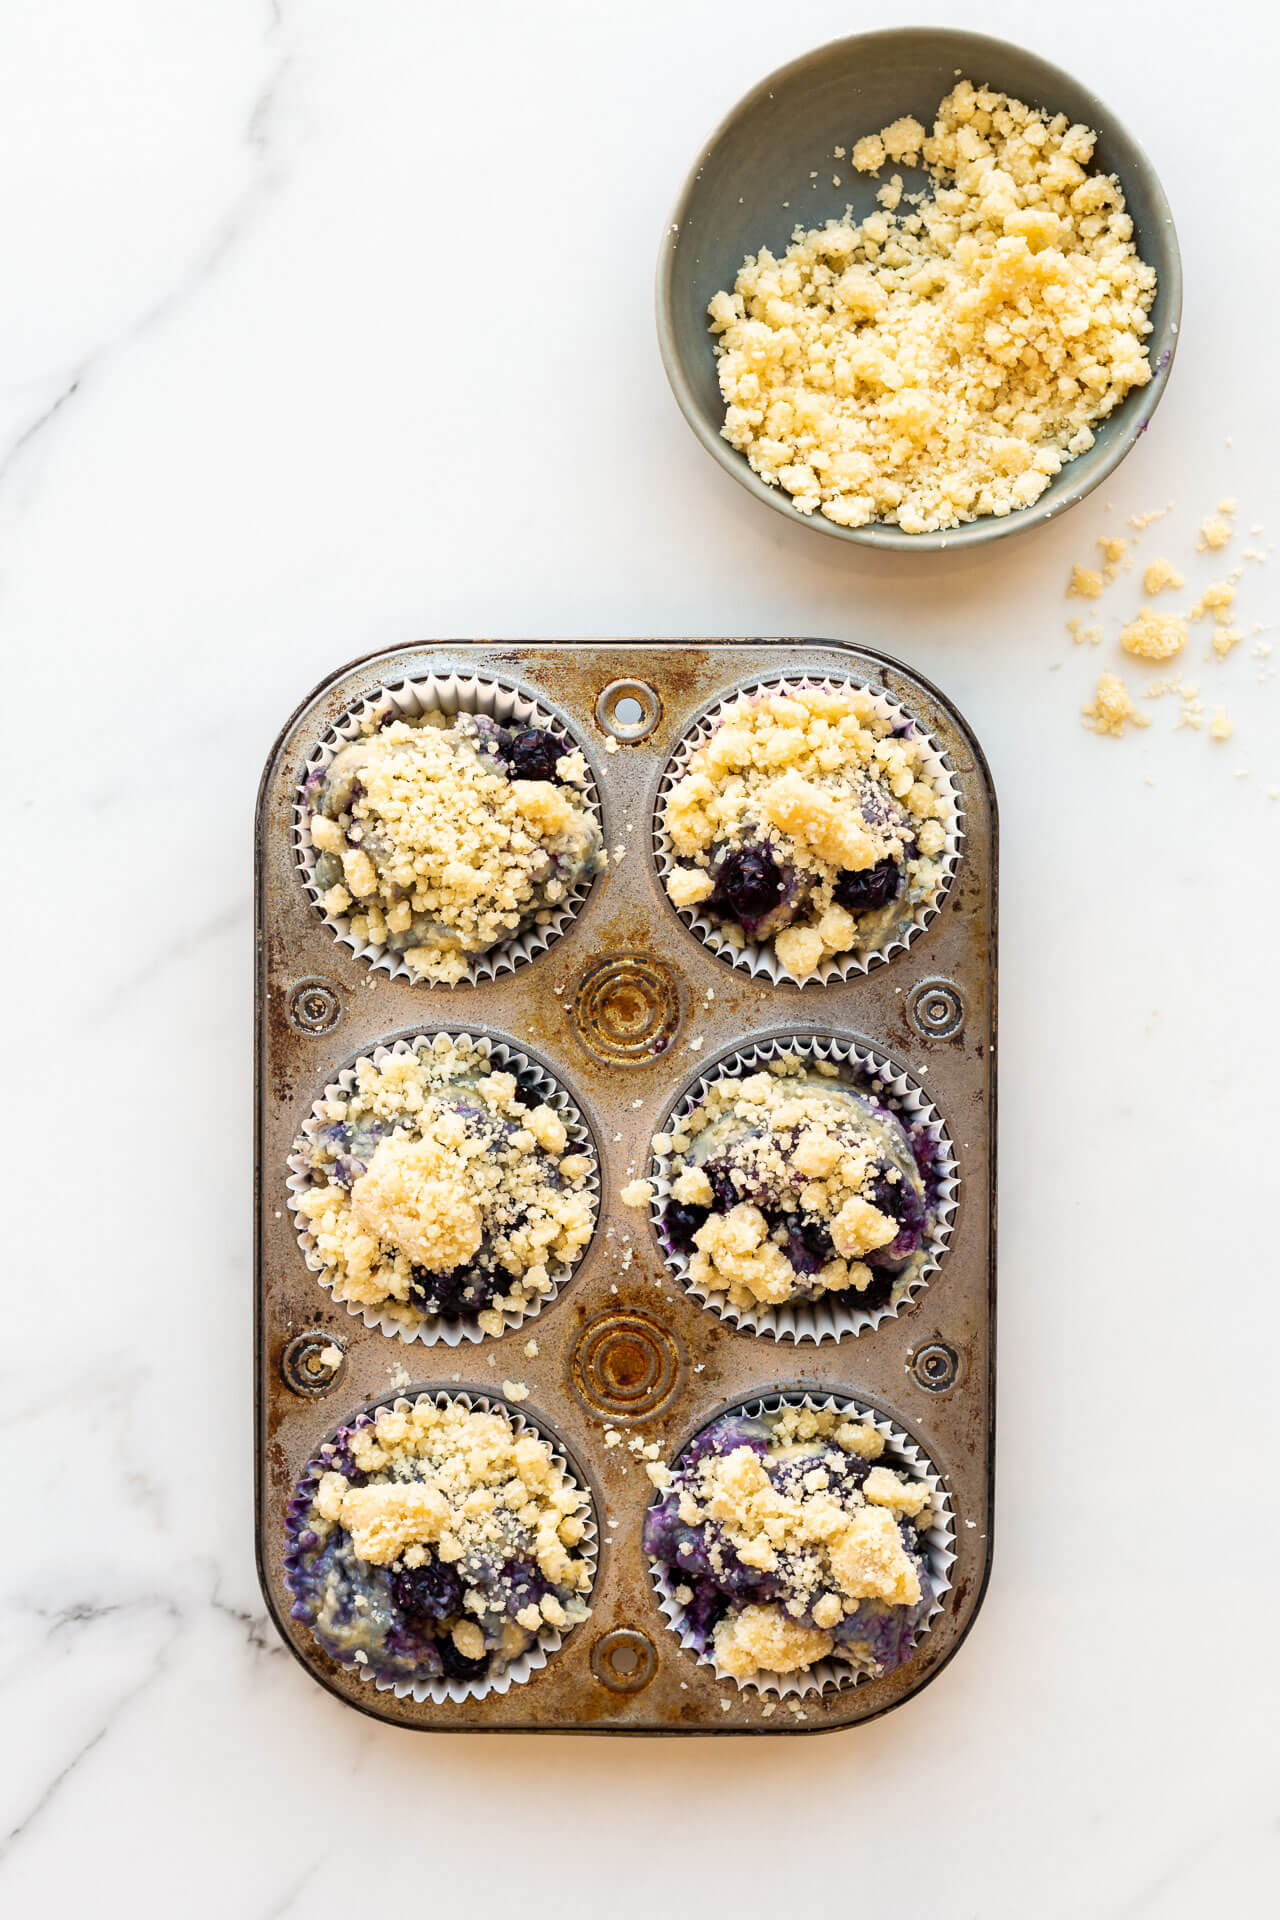 Topping blueberry muffins with streusel topping in a vintage muffin pan before baking